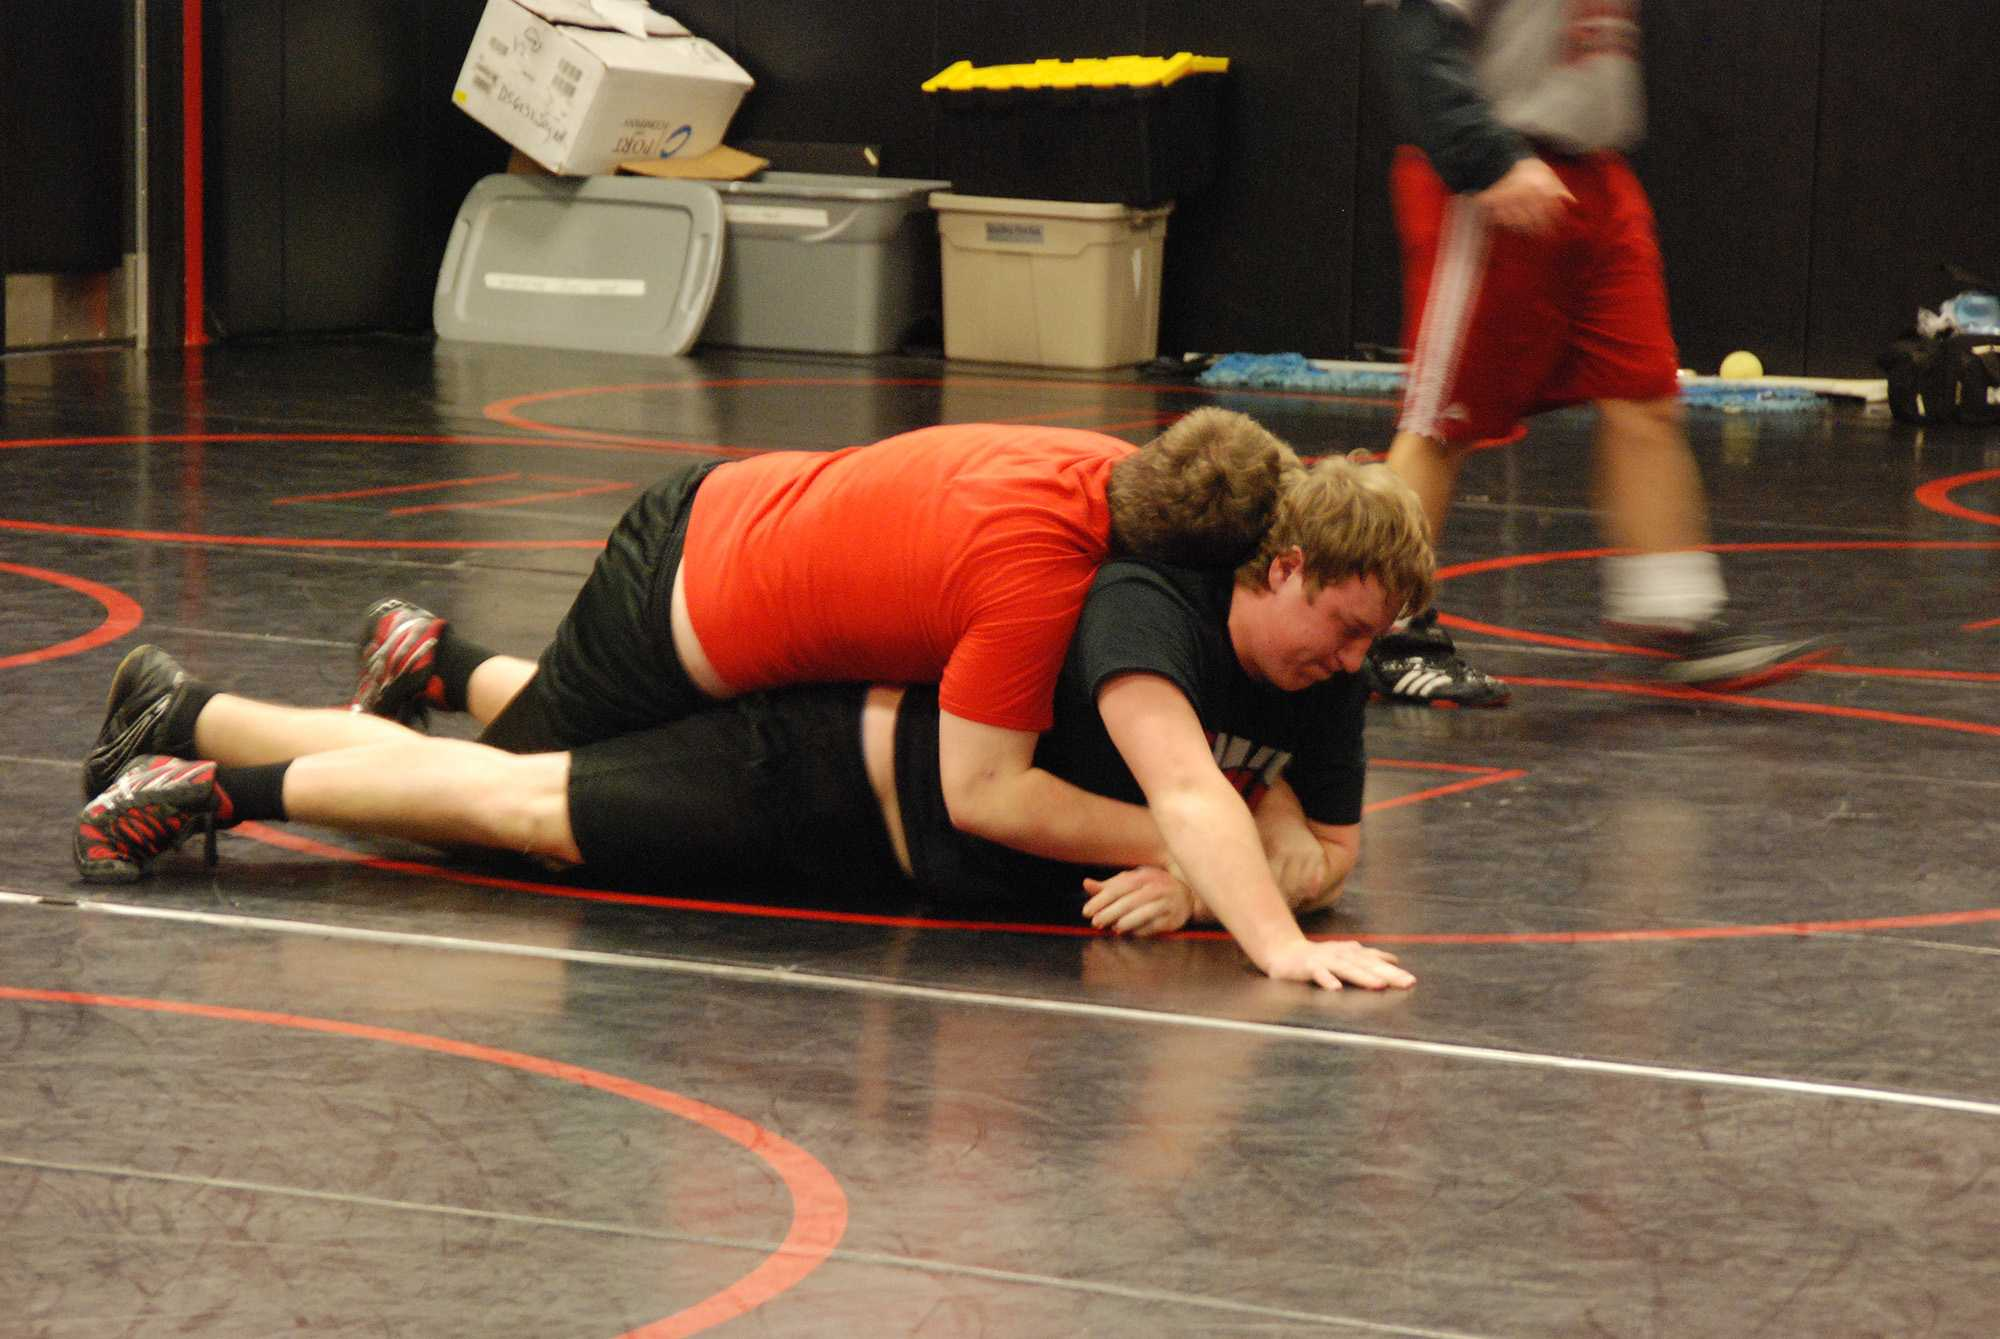 The Leopard wrestling team has one wrestler competing in the state tournament Feb. 14-15 with another listed as an alternate. Senior Camdon Droge is going for a title in the 170 lb. weight division while sophomore Tom Elvin (pictured above) is an alternate in the 285 lb. division.